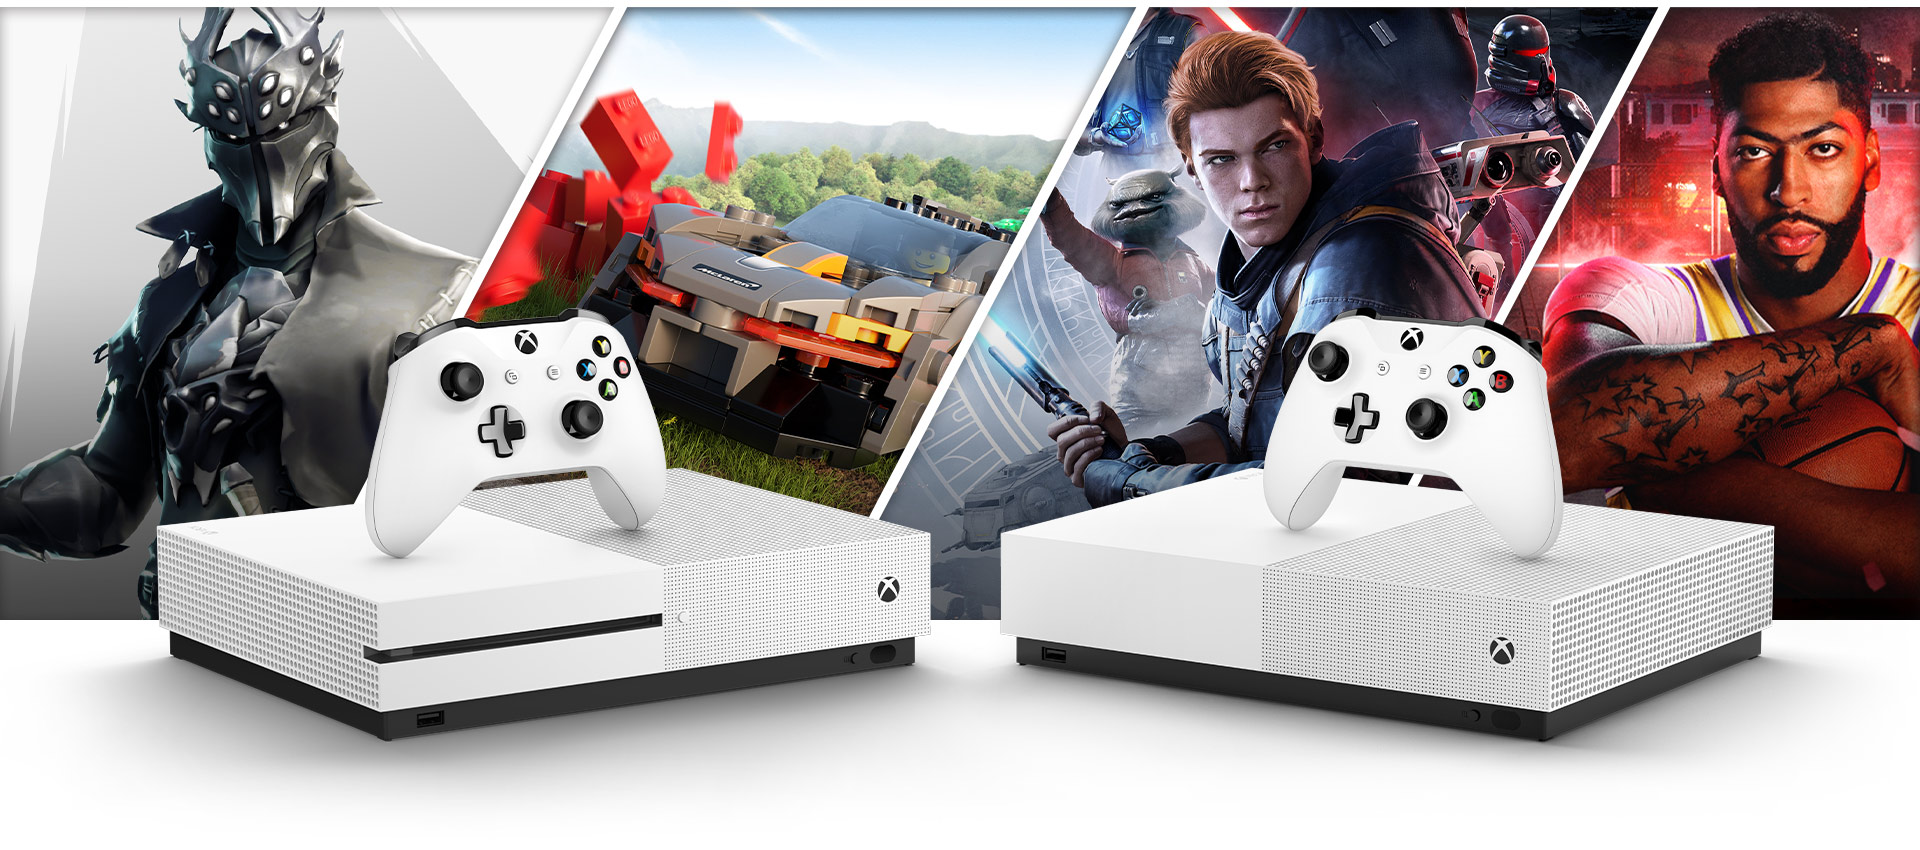 Gráficos de Fortnite, Forza Horizon 4, Star Wars Jedi: Fallen Order y NBA 2K20 detrás de una Xbox One S y Xbox One S All-Digital Edition